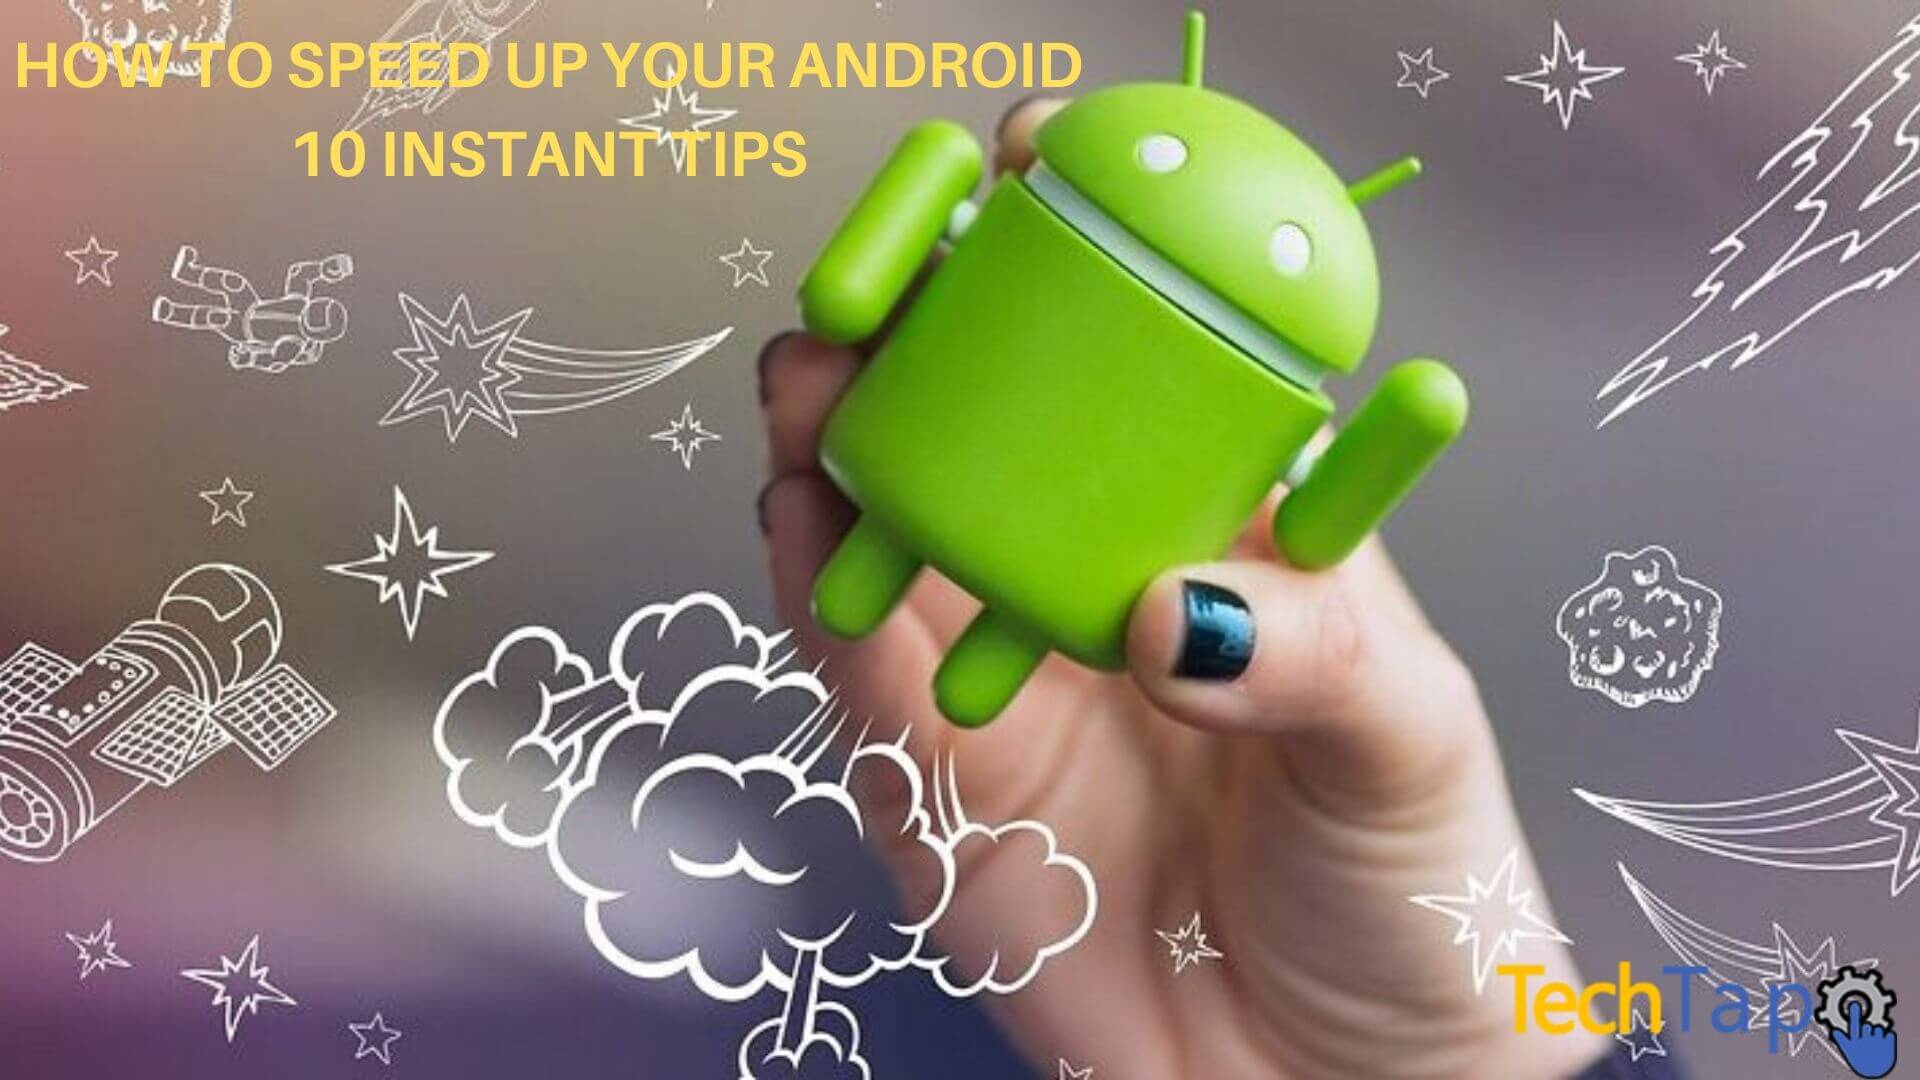 HOW TO SPEED UP YOUR ANDROID